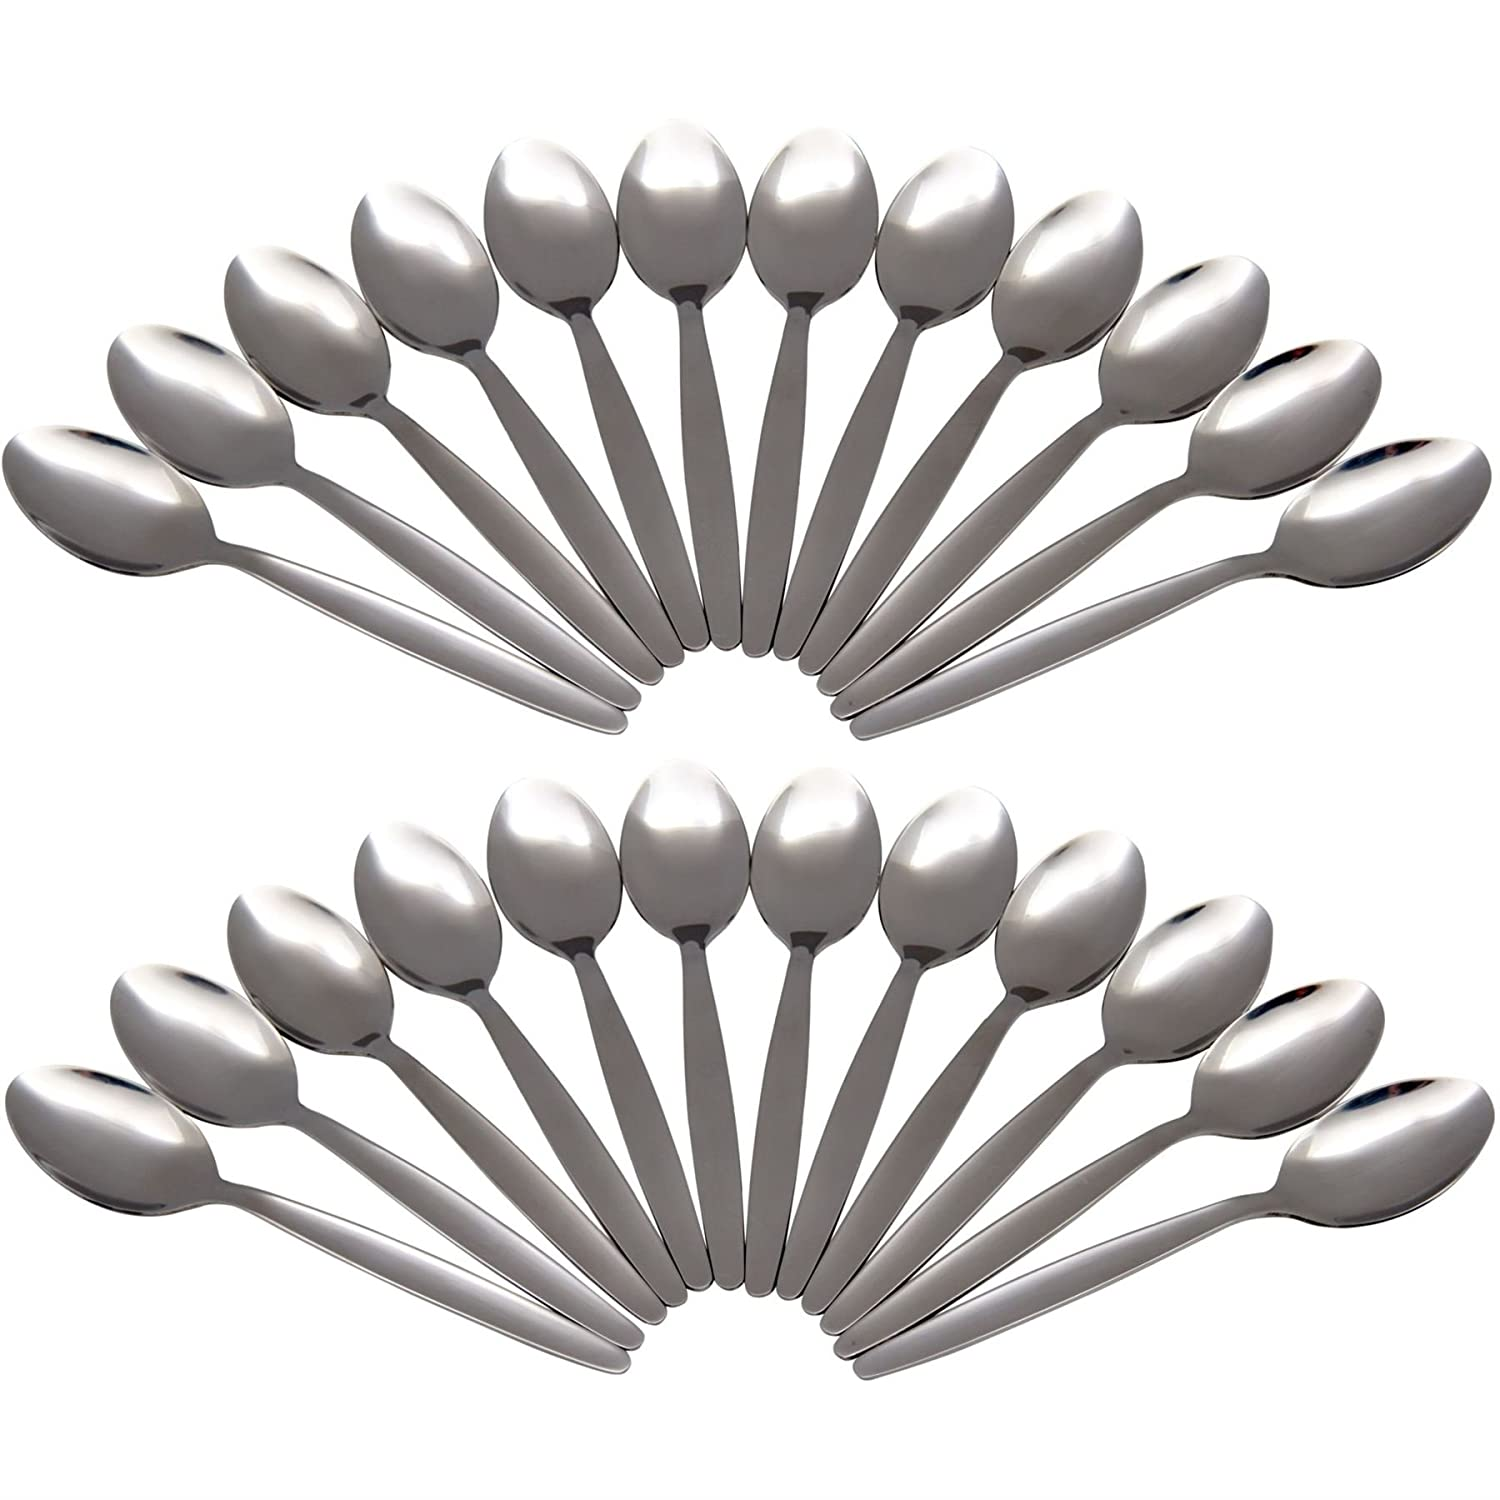 Argon Tableware Set Of 24 Stainless Steel Teaspoons